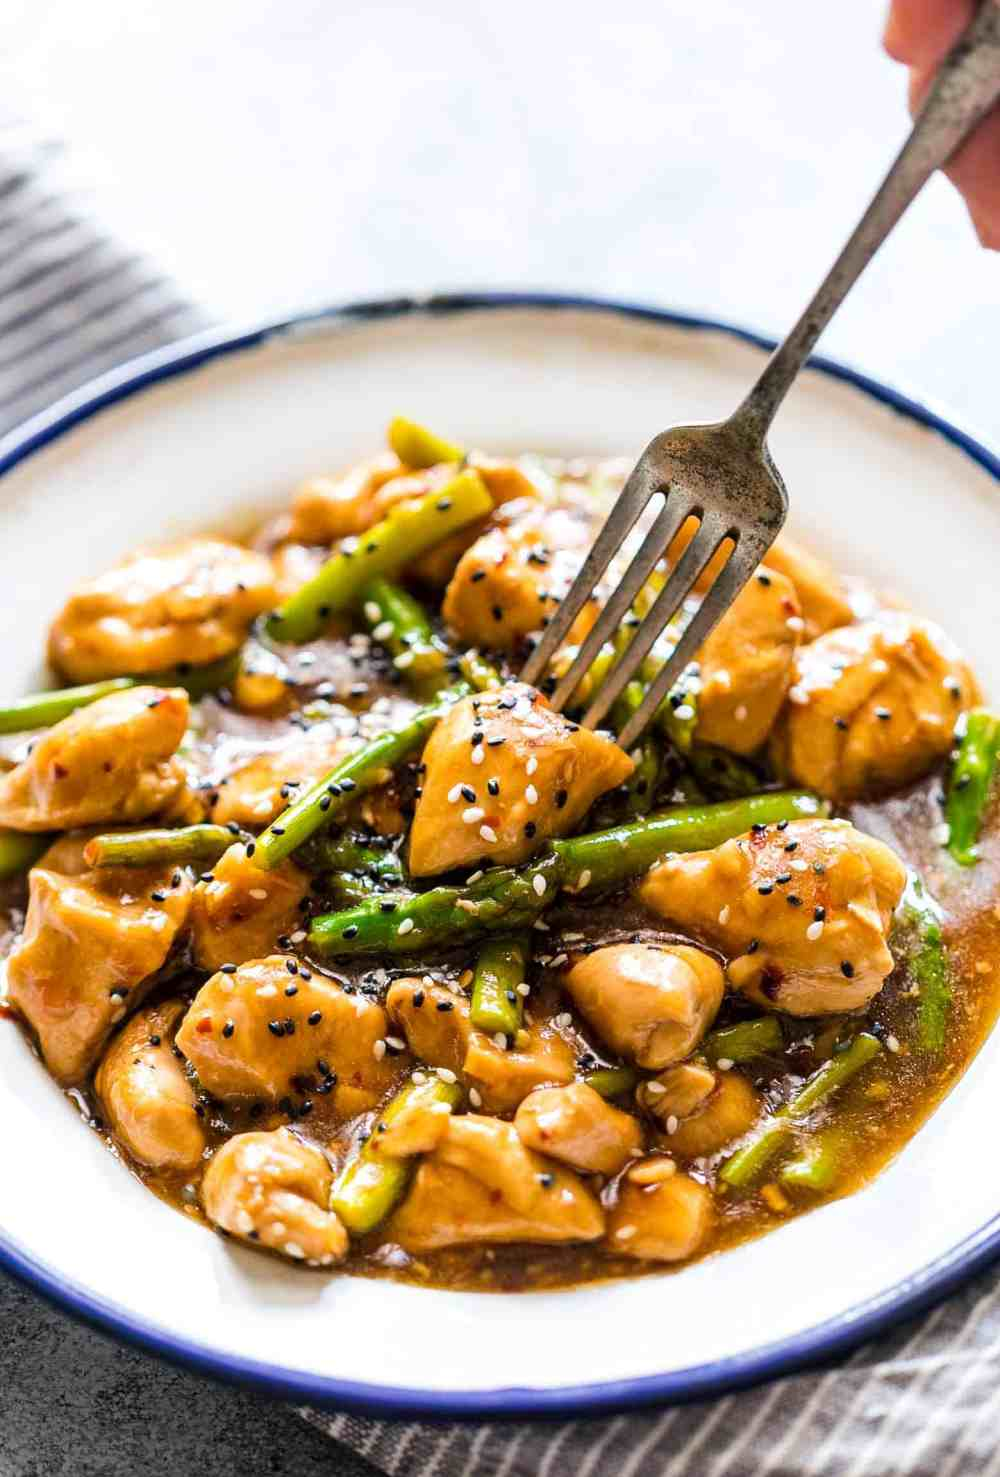 Easy lemon ginger chicken asparagus stir fry is a quick, 30 minute asian recipe that's sure to be a hit with the family. It's low carb and can gluten free too so you can enjoy it guilt-free!